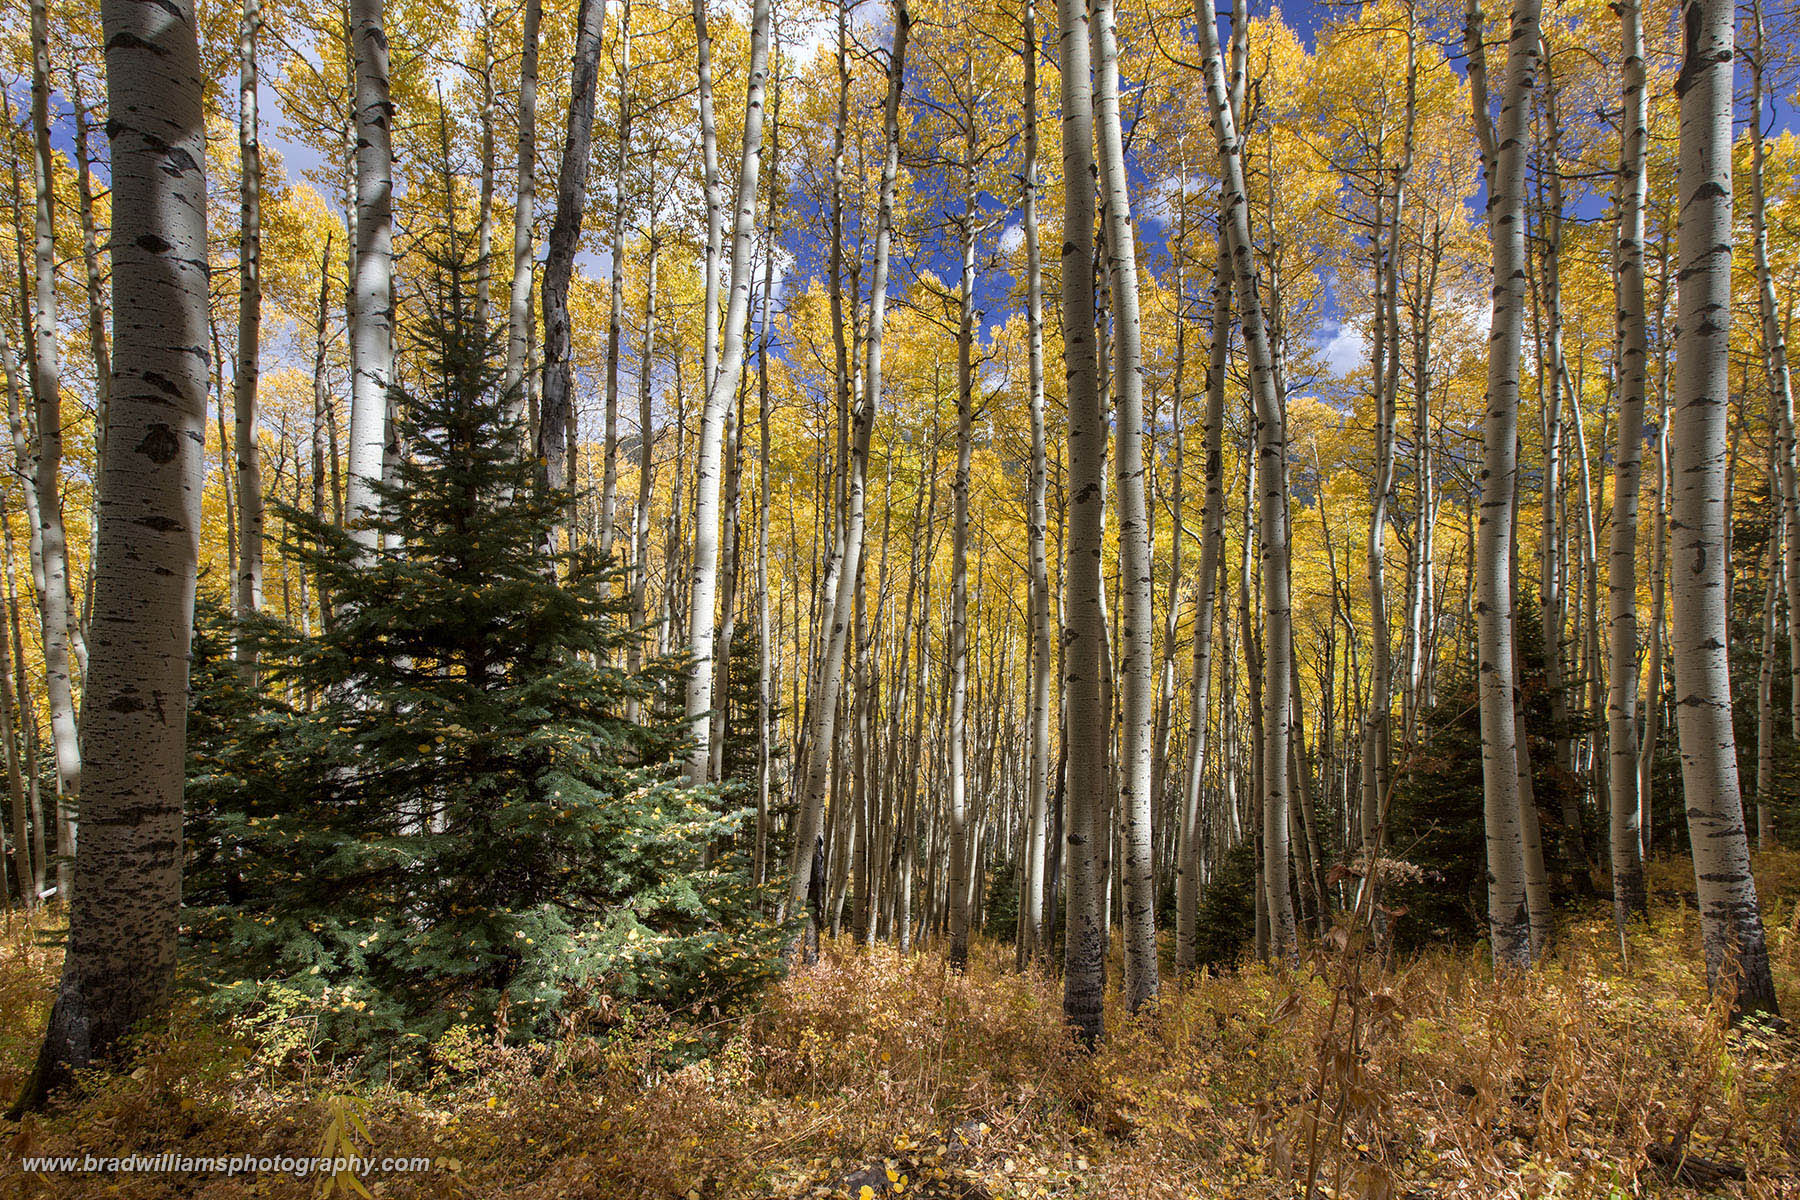 Mount Sneffels Wilderness, Uncompahgre National Forest, Colorado, fall, asepn, photo